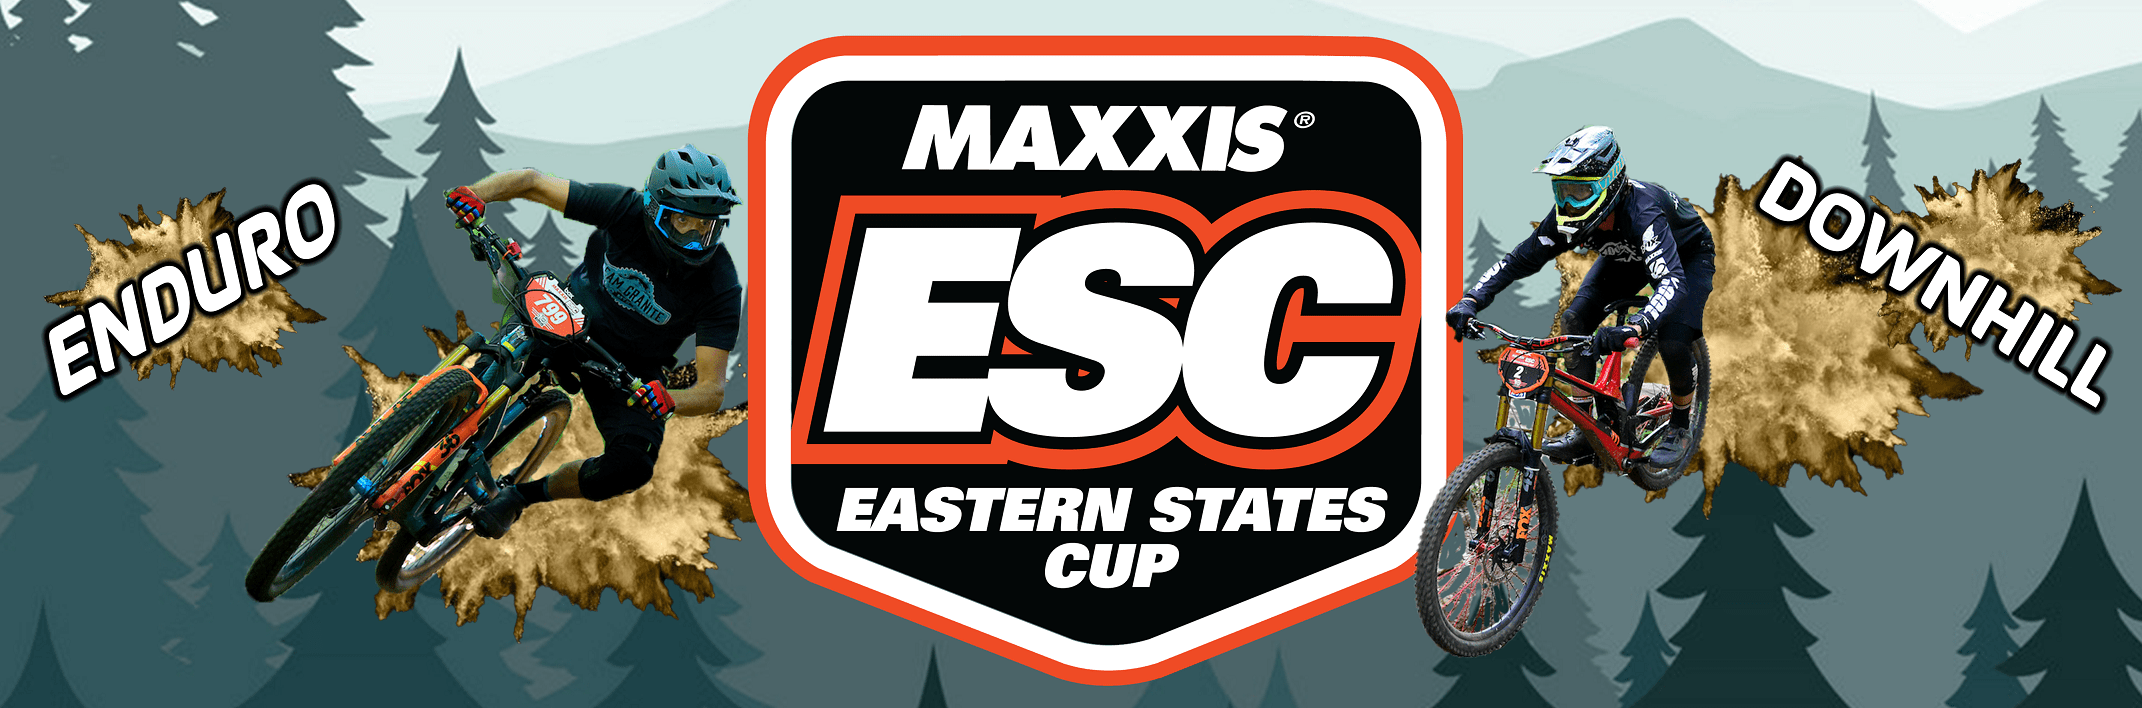 MAXXIS Eastern States Cup presented by Kates Real Food